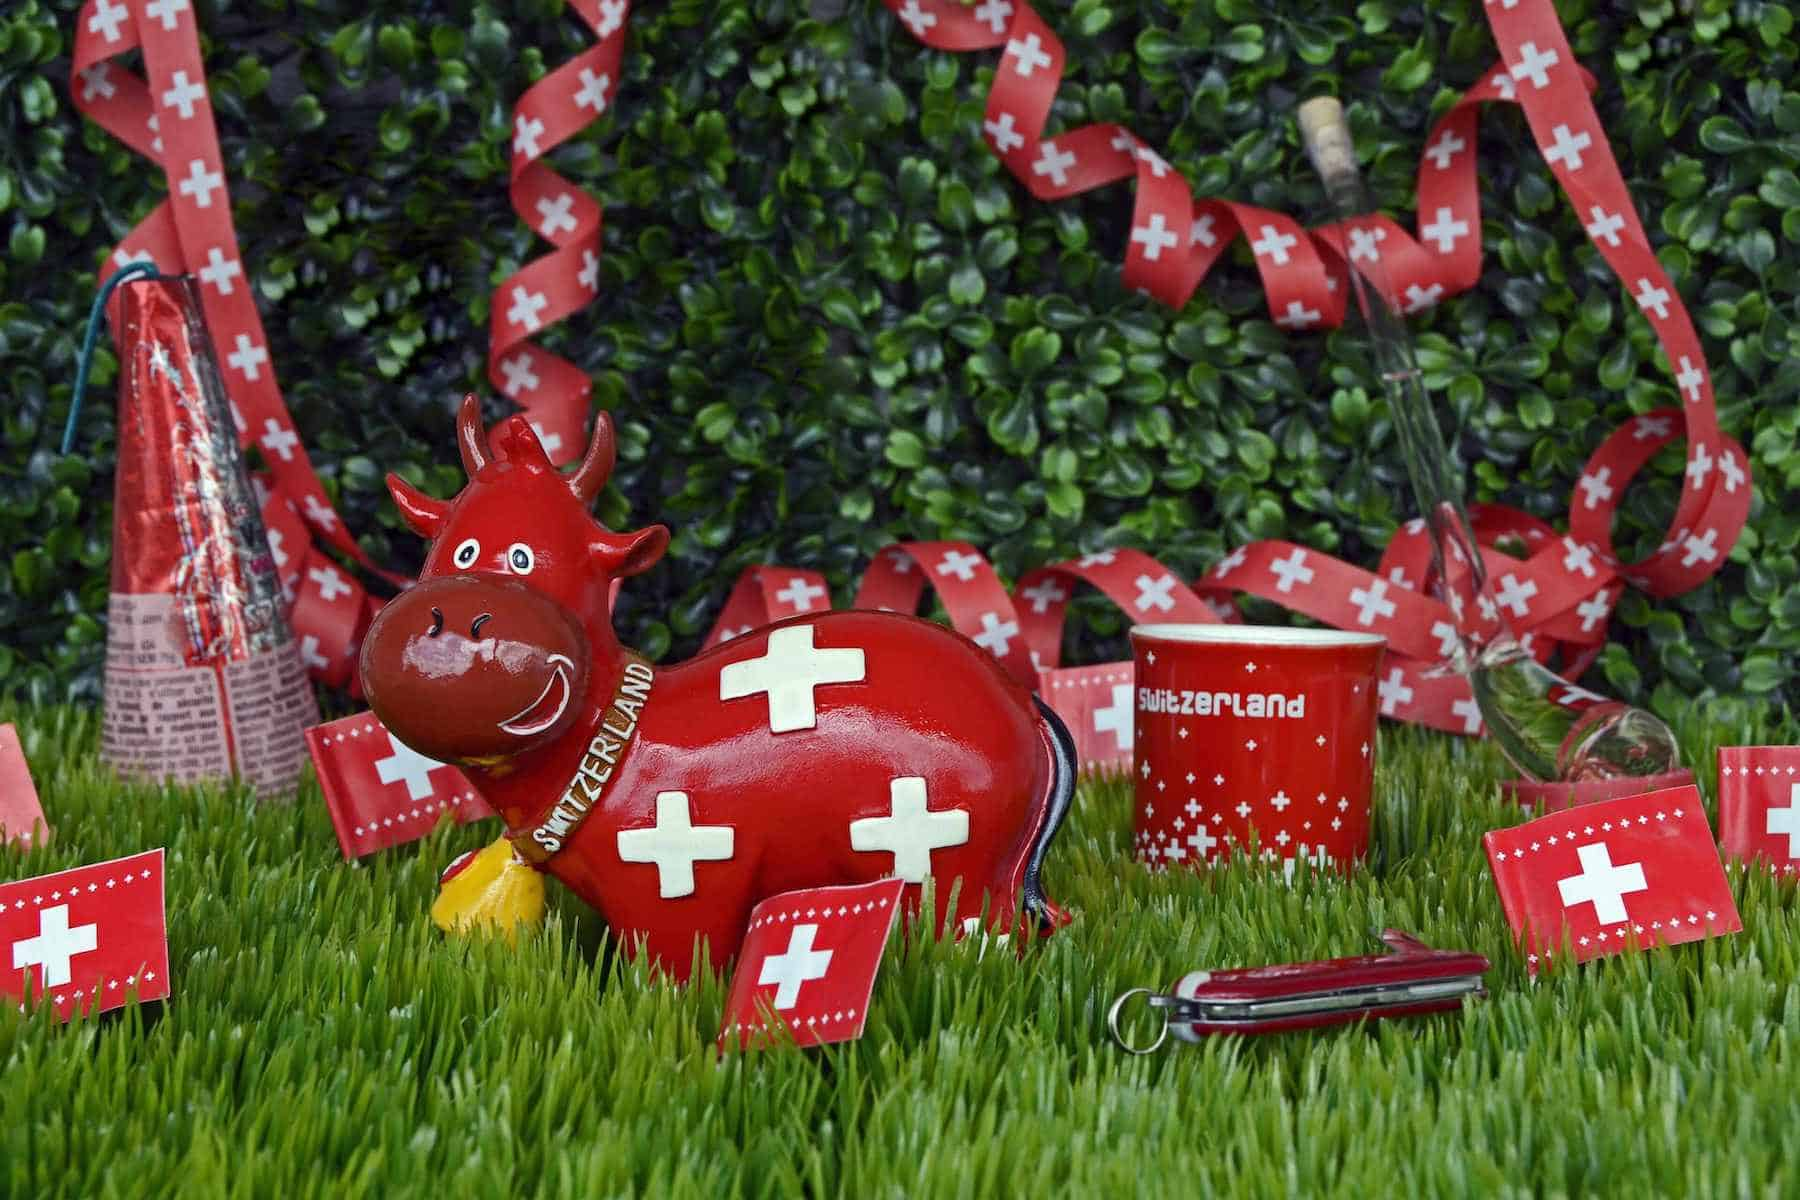 Souvenirs to buy in Switzerland